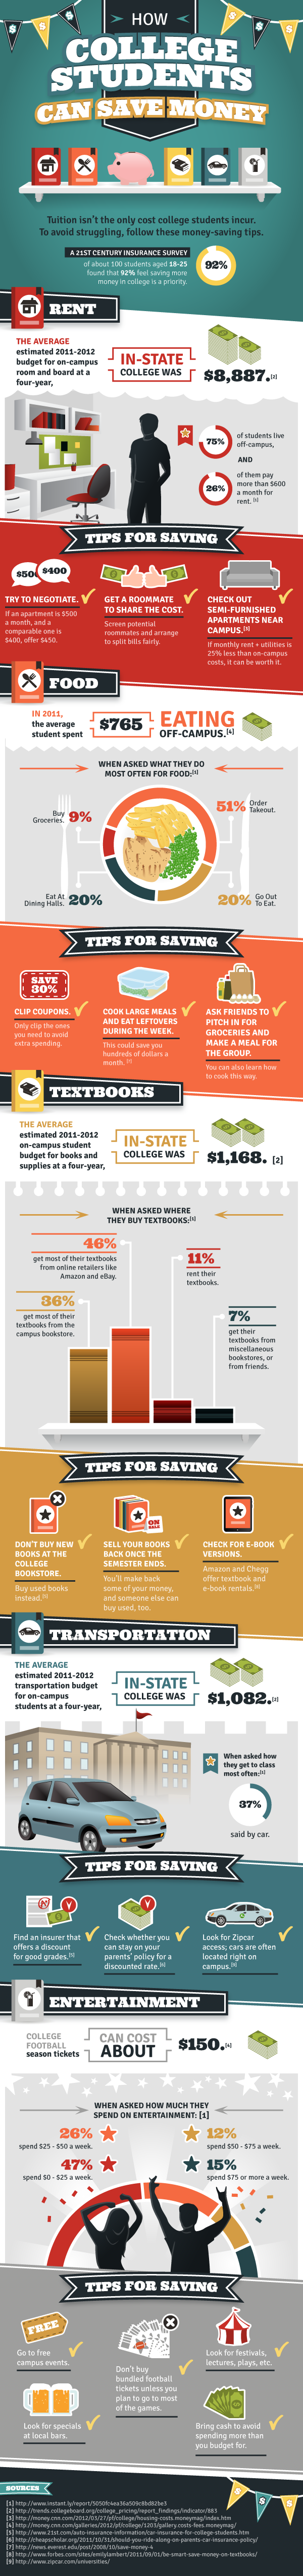 how much to save for college fund